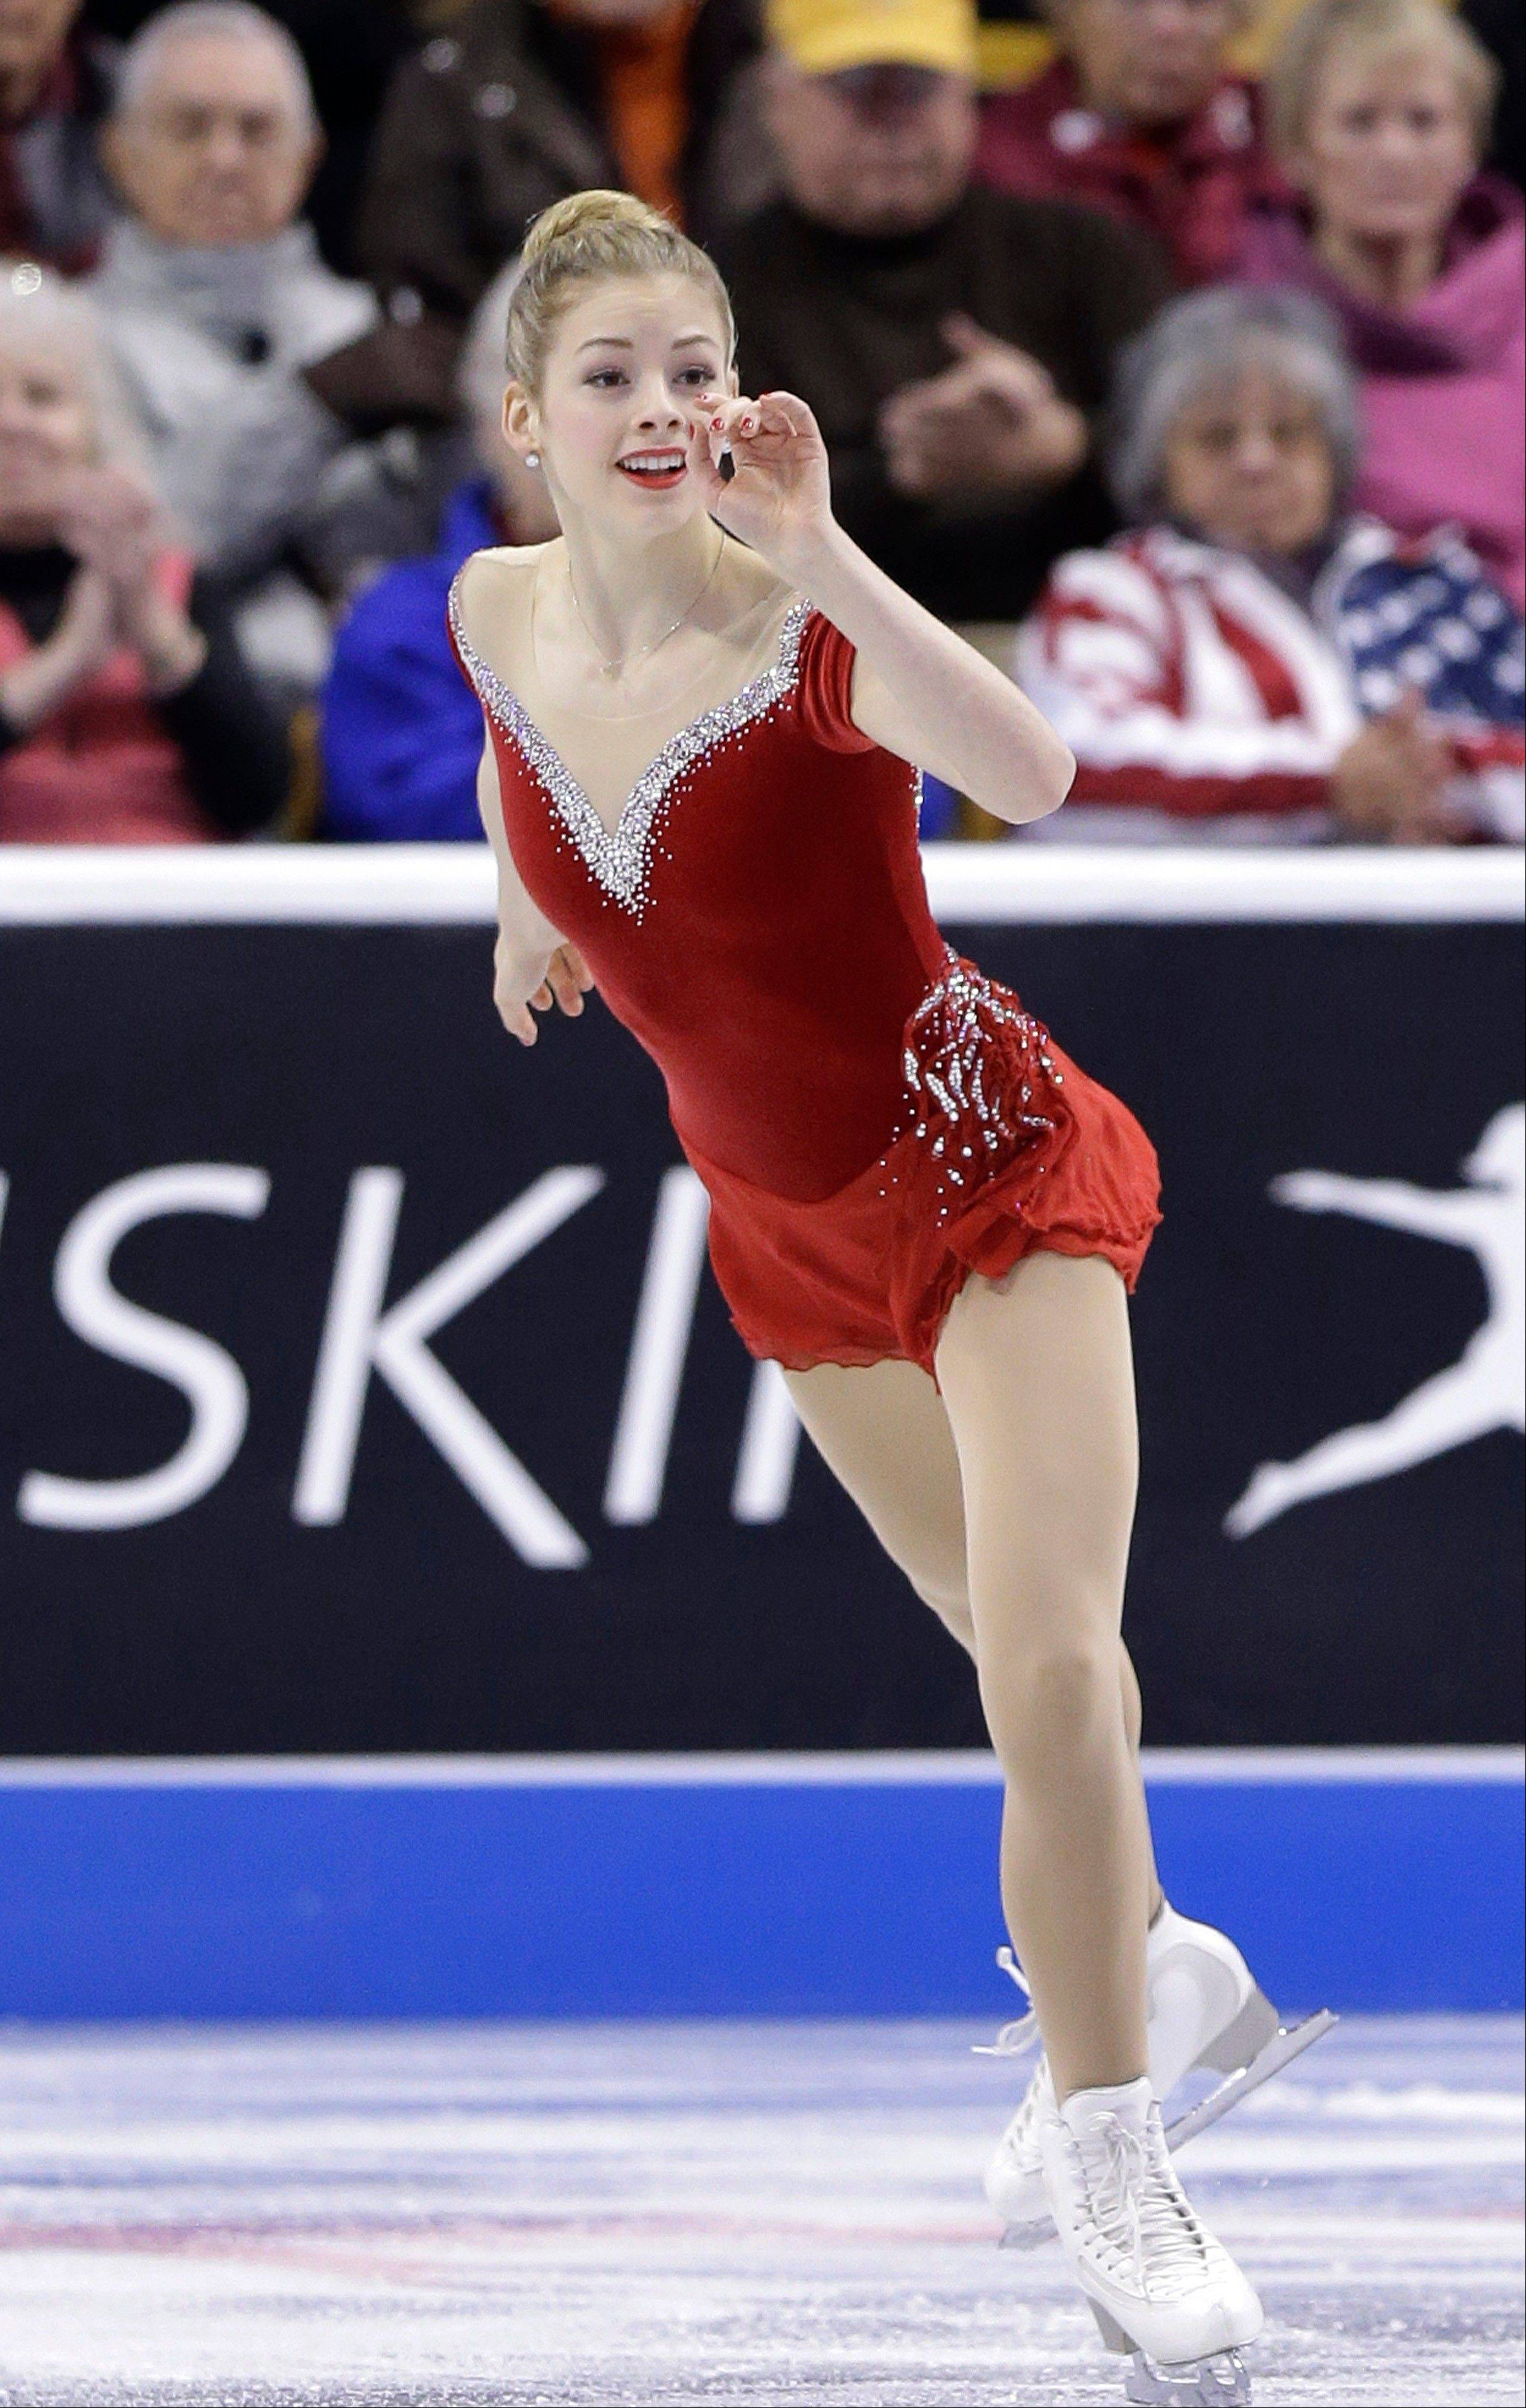 Elk Grove Village native Gracie Gold skates to �Piano Concerto� during the women�s short program at the U.S. Figure Skating Championships on Thursday in Boston.